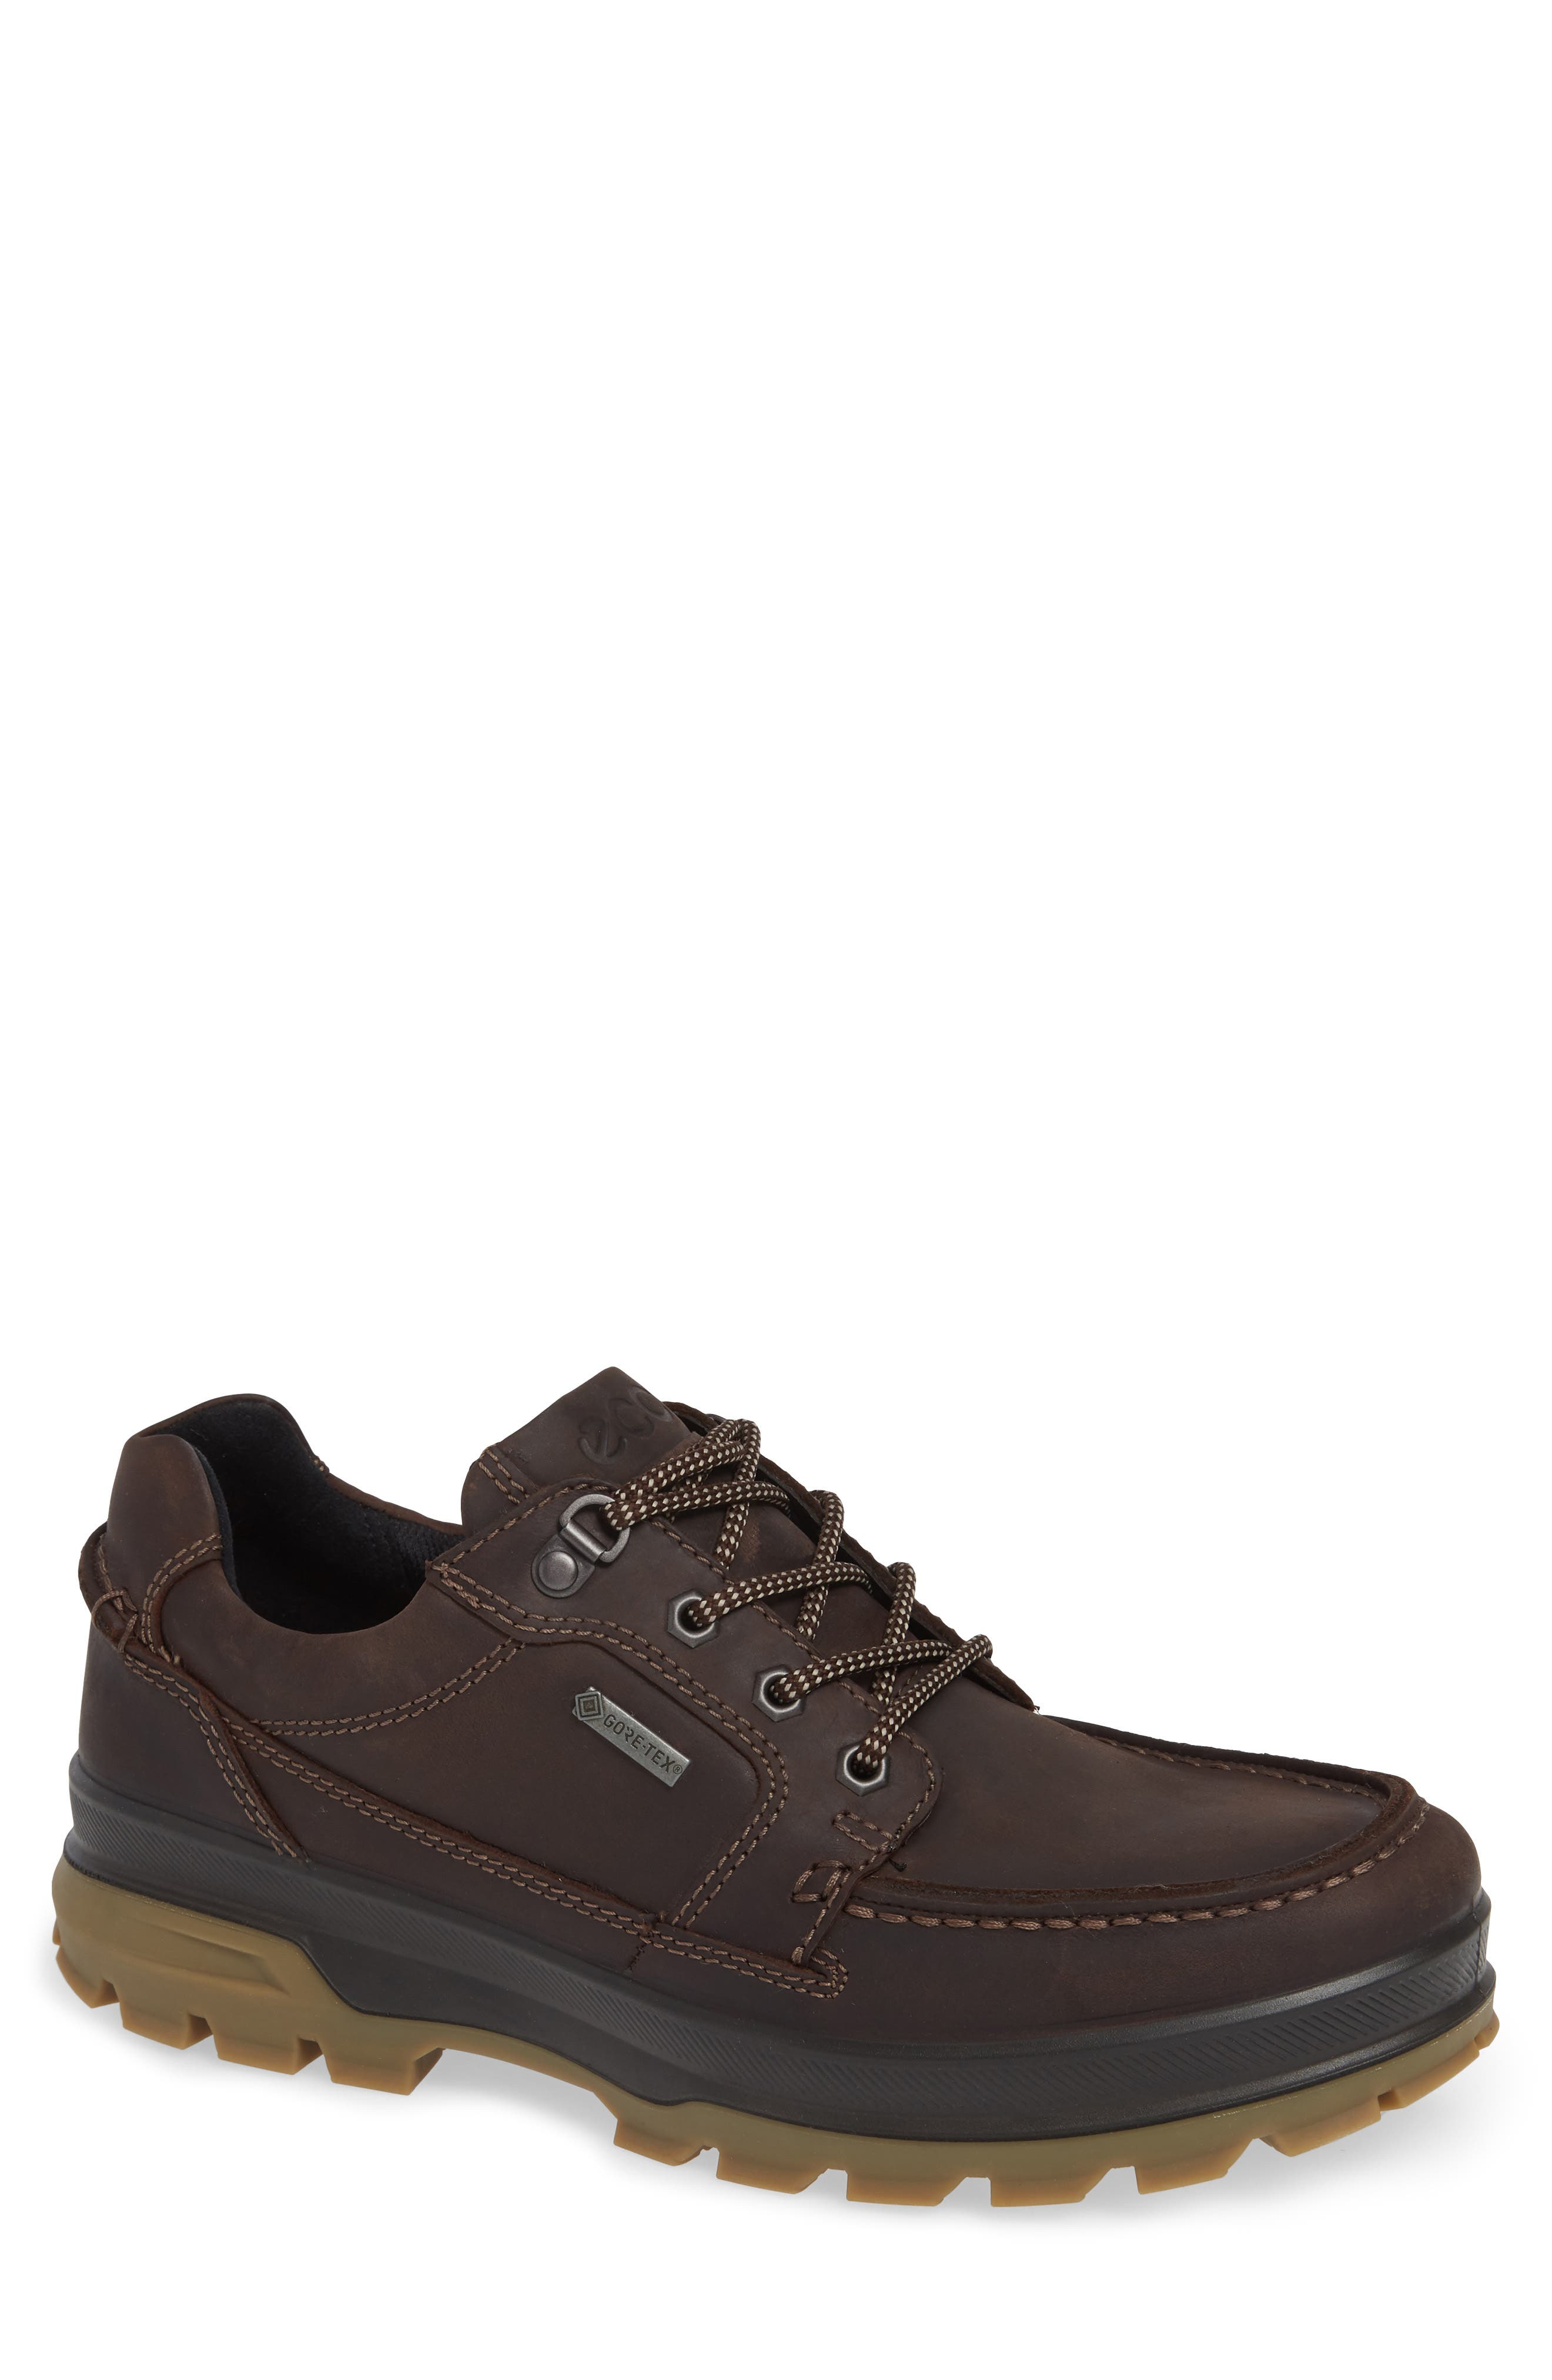 Rugged Track Low Gore-Tex<sup>®</sup> Oxford,                             Main thumbnail 1, color,                             MOCHA LEATHER